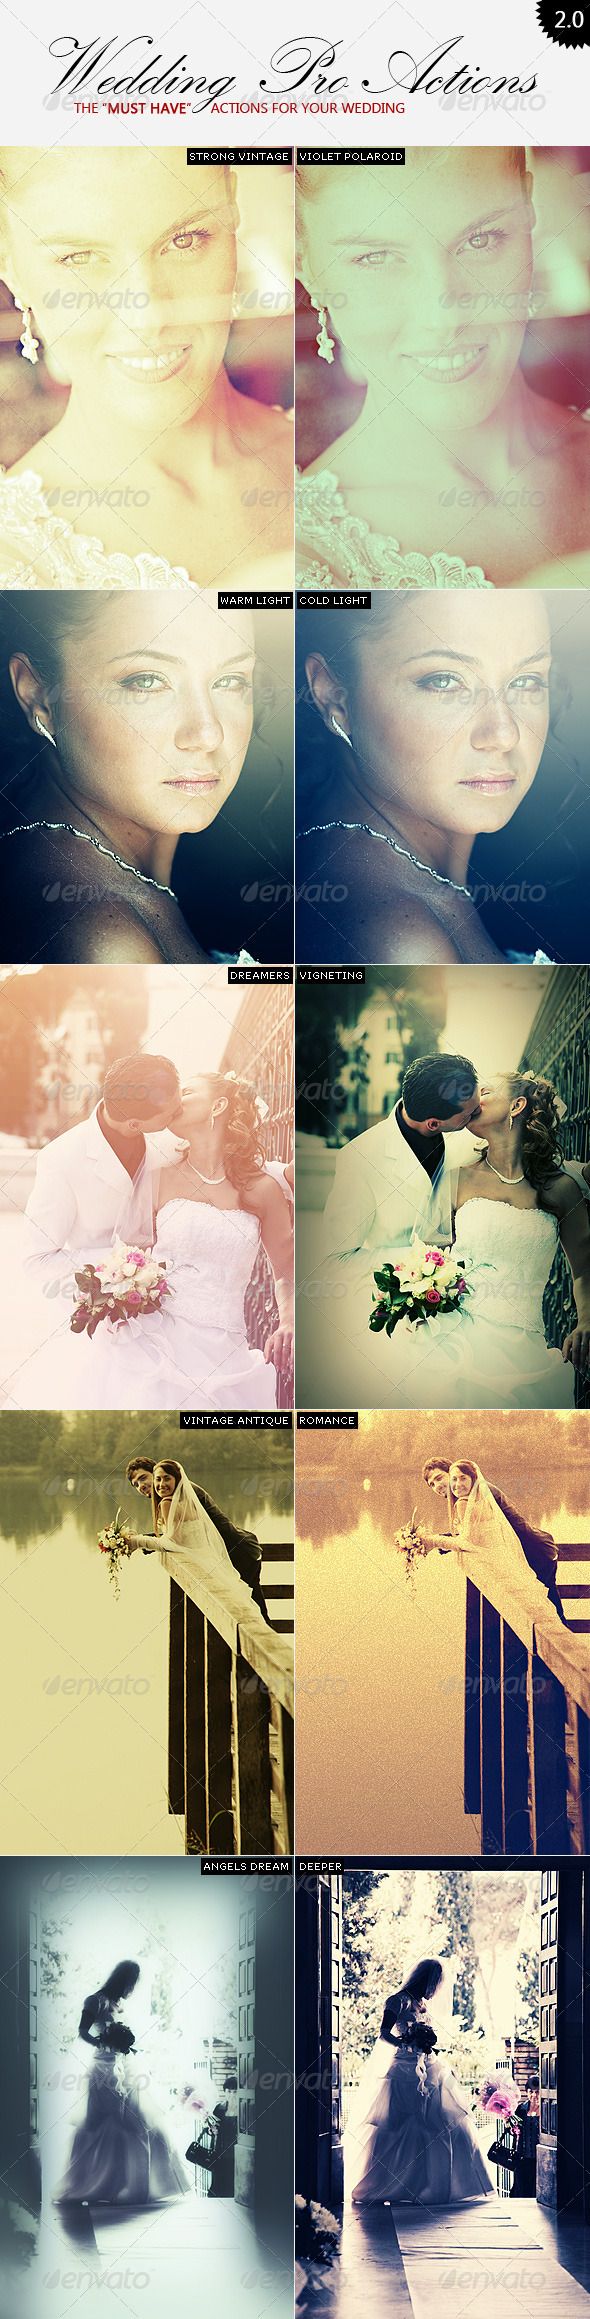 Wedding Pro Actions | 2.0 - Photo Effects Actions